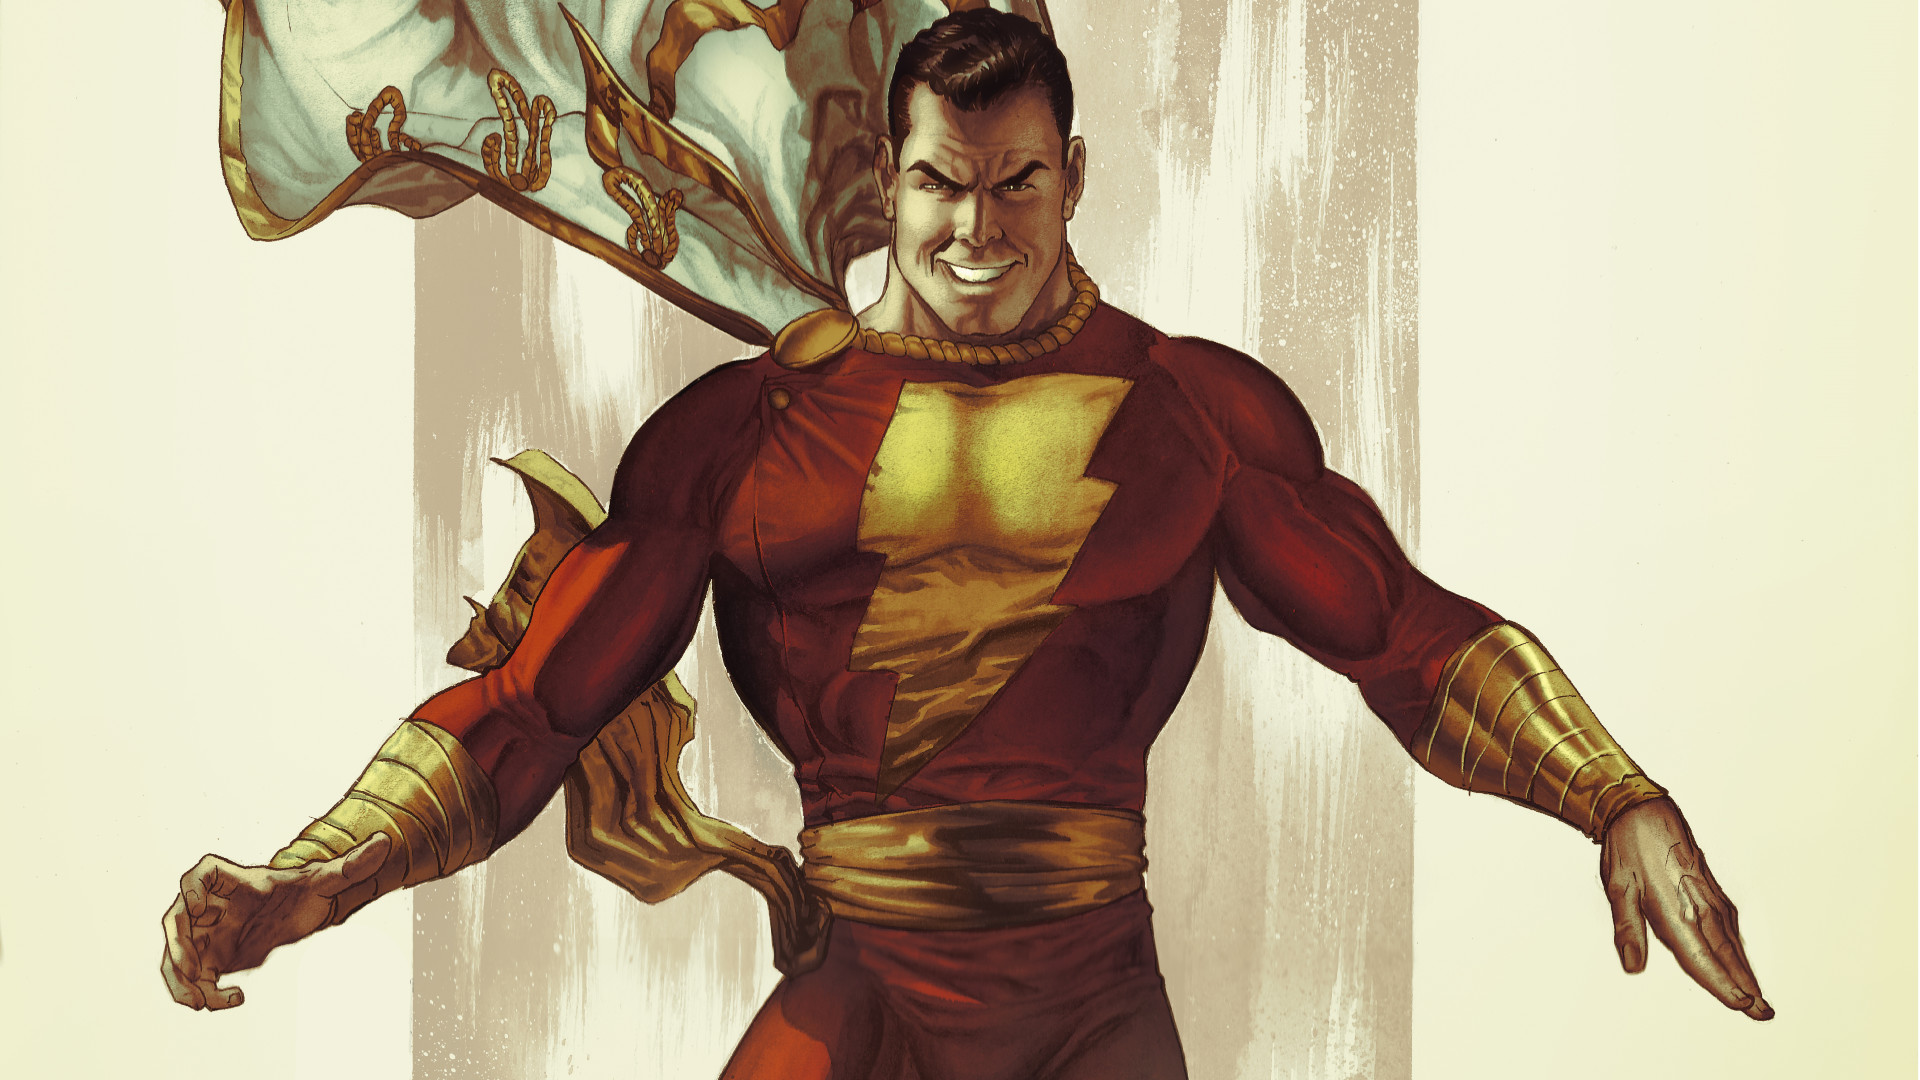 Explore More Wallpapers in the Shazam! Subcategory!